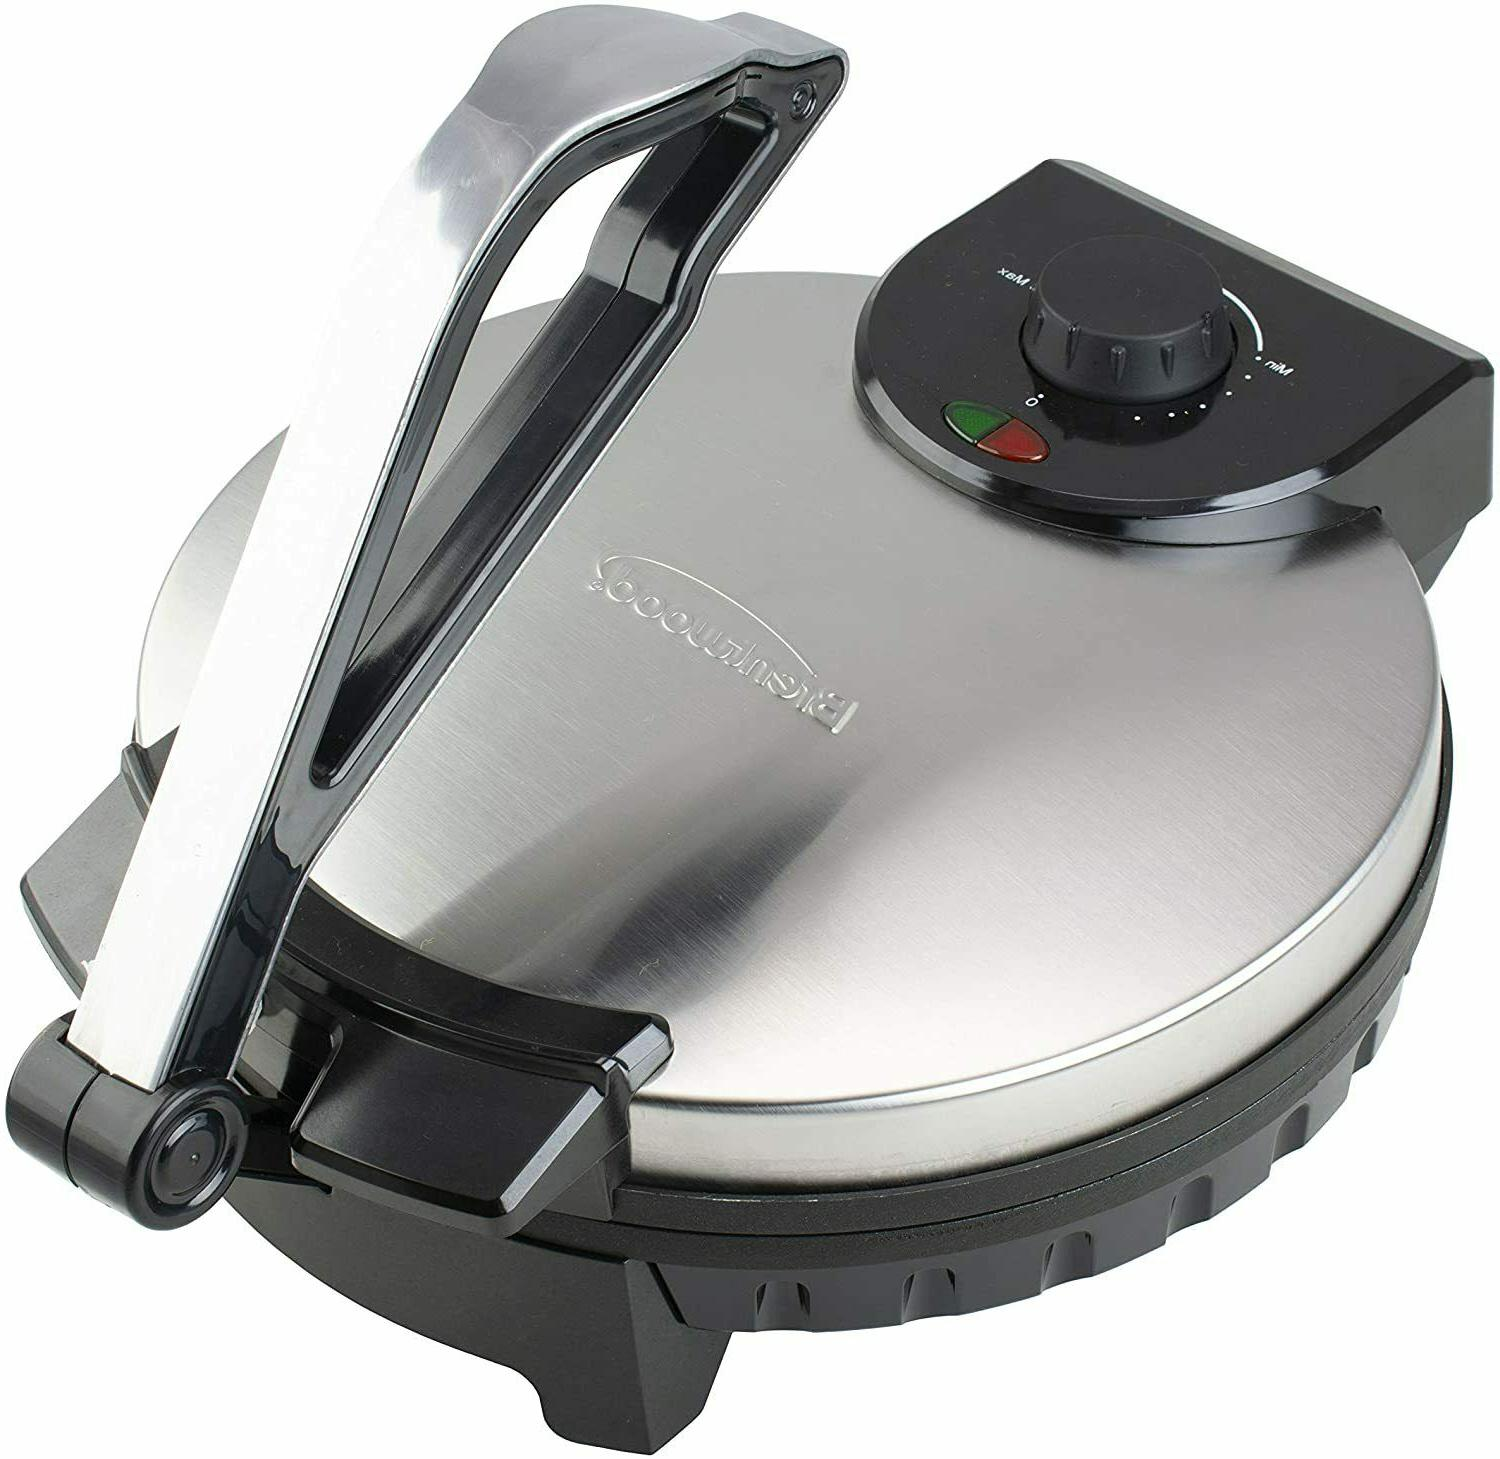 stainless steel non stick electric tortilla maker